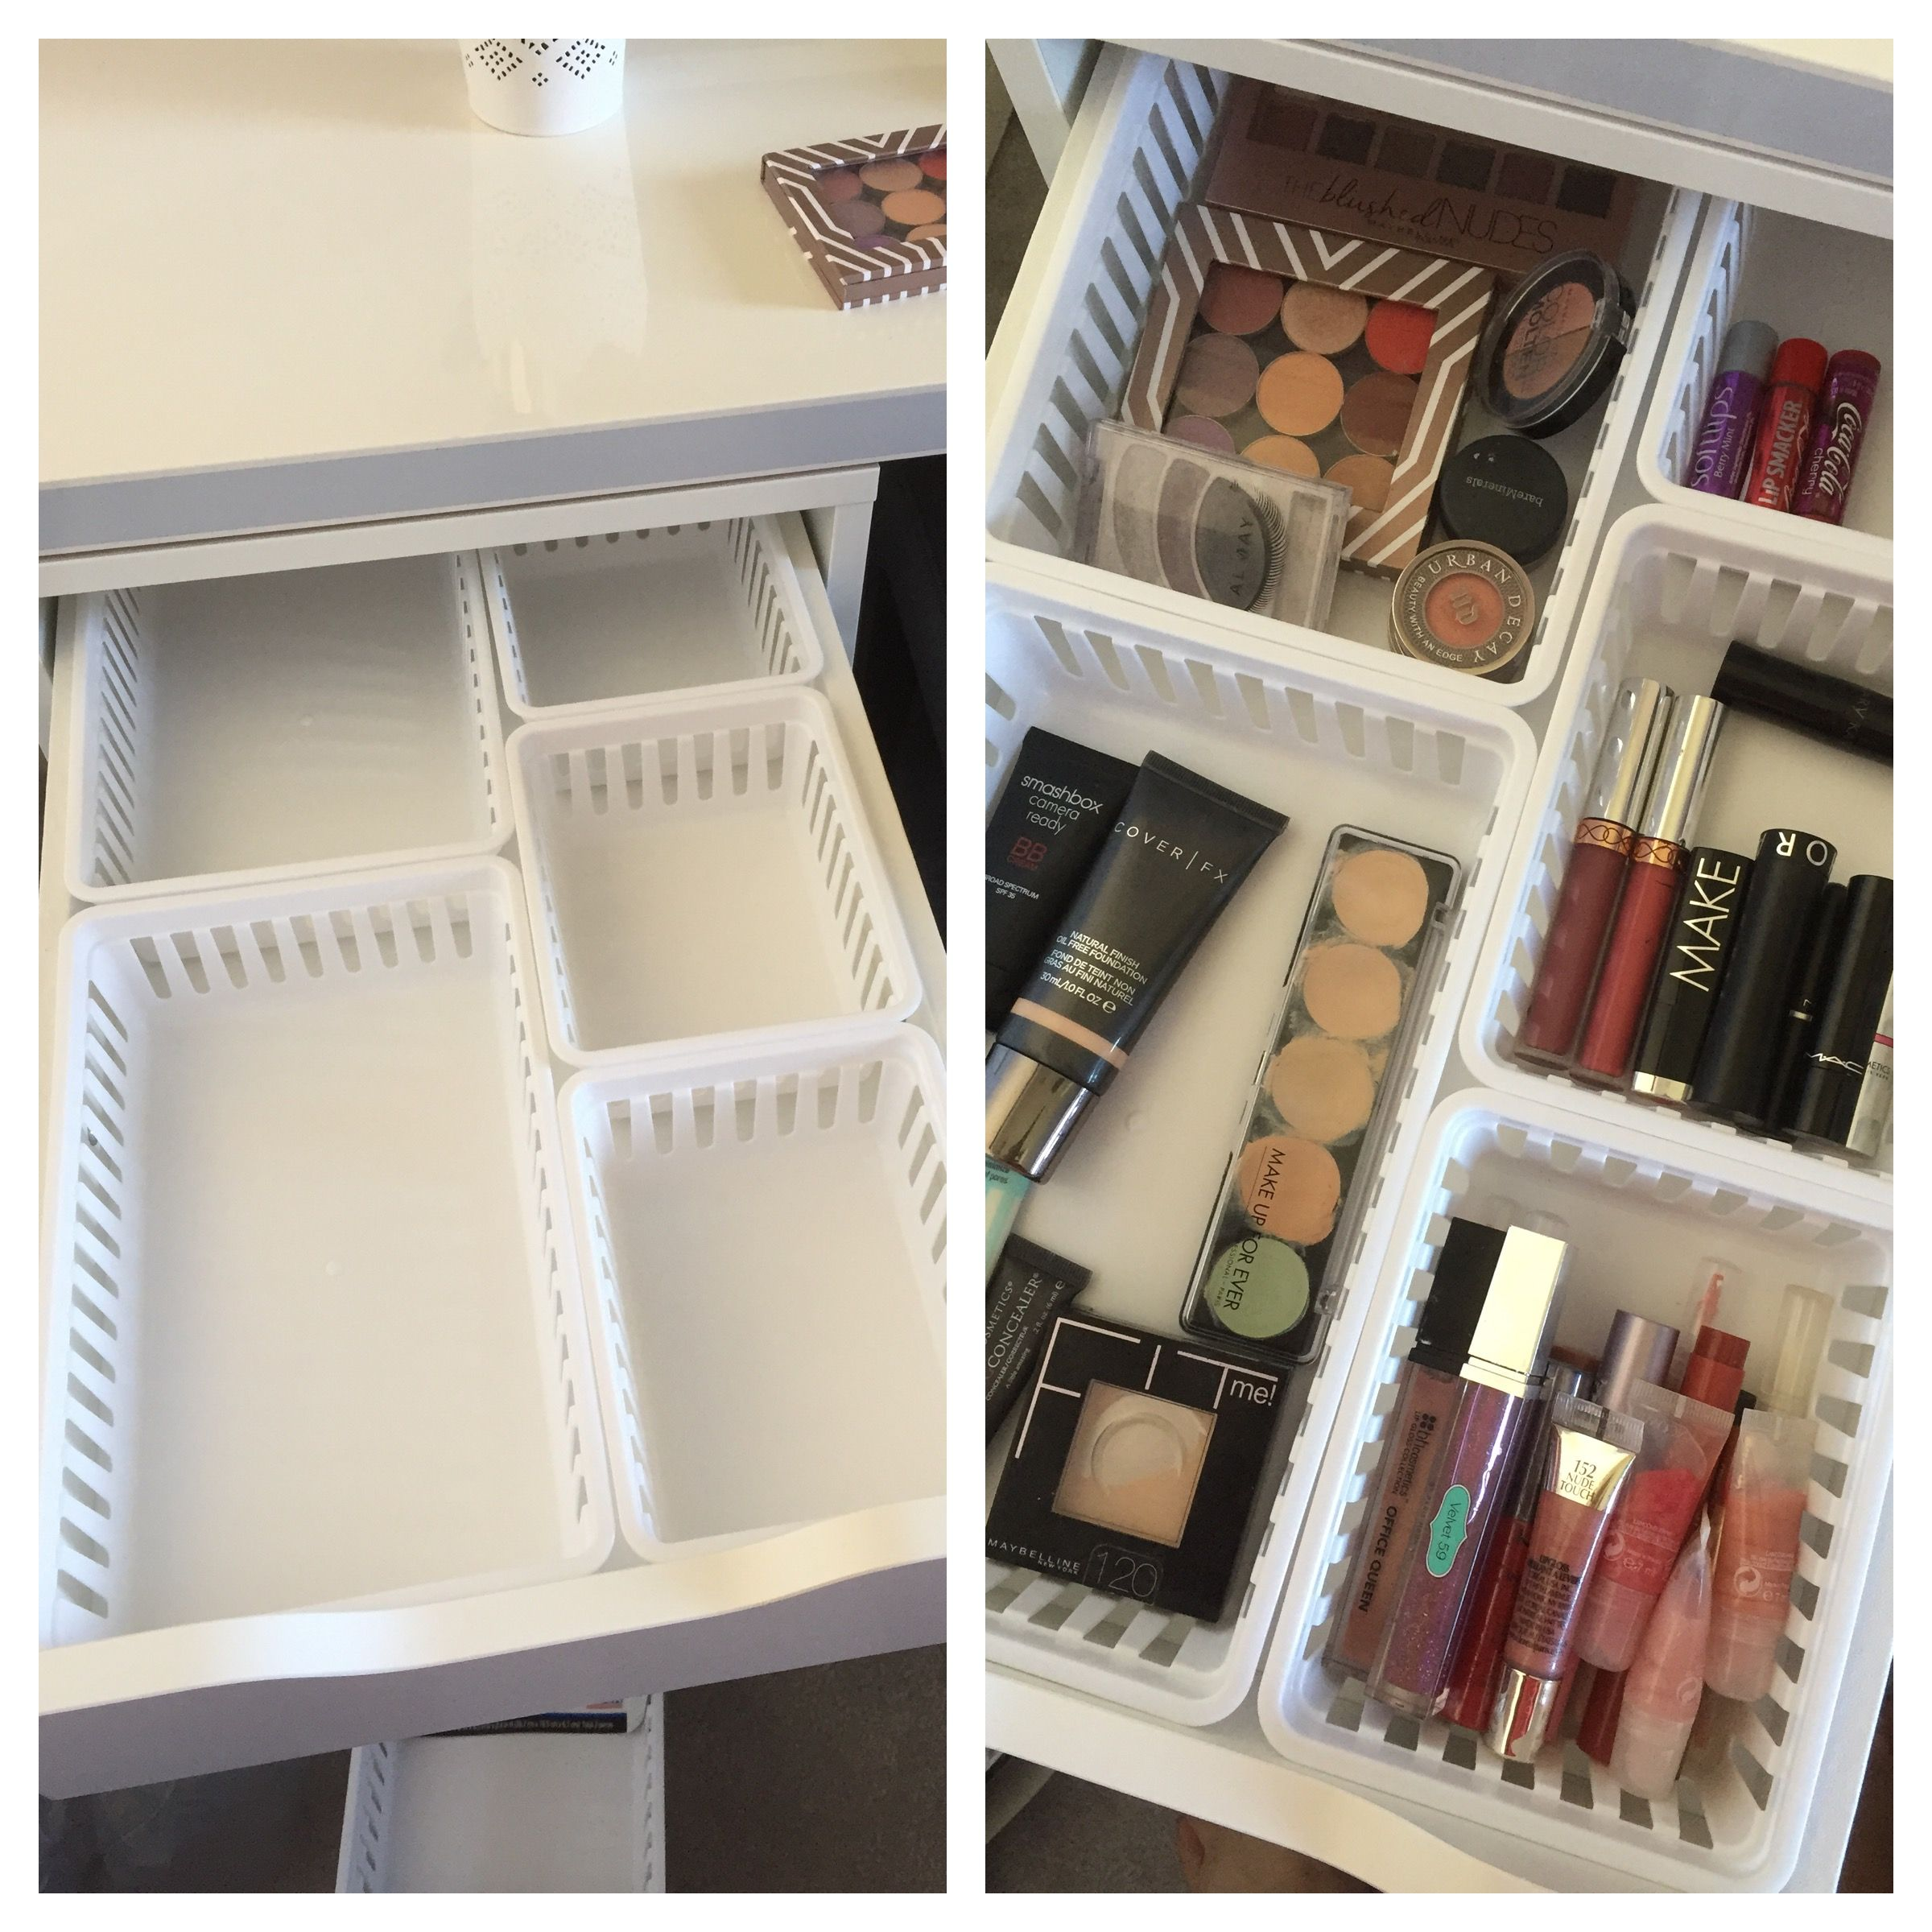 walmart makeup storage ideas for ikea alex drawers - Makeup Eitelkeit Beleuchtung Ikea